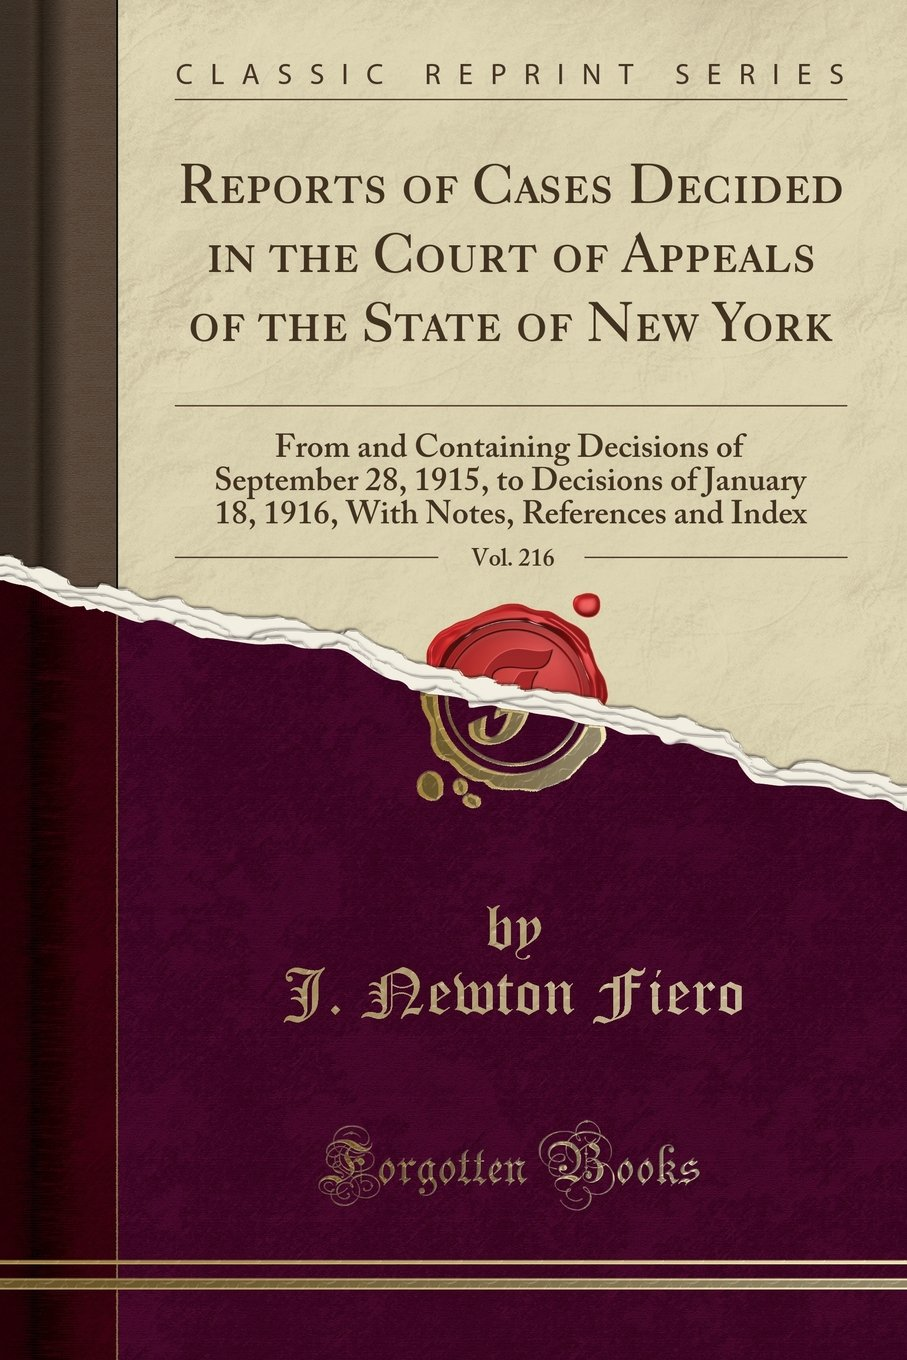 Download Reports of Cases Decided in the Court of Appeals of the State of New York, Vol. 216: From and Containing Decisions of September 28, 1915, to Decisions ... Notes, References and Index (Classic Reprint) ebook